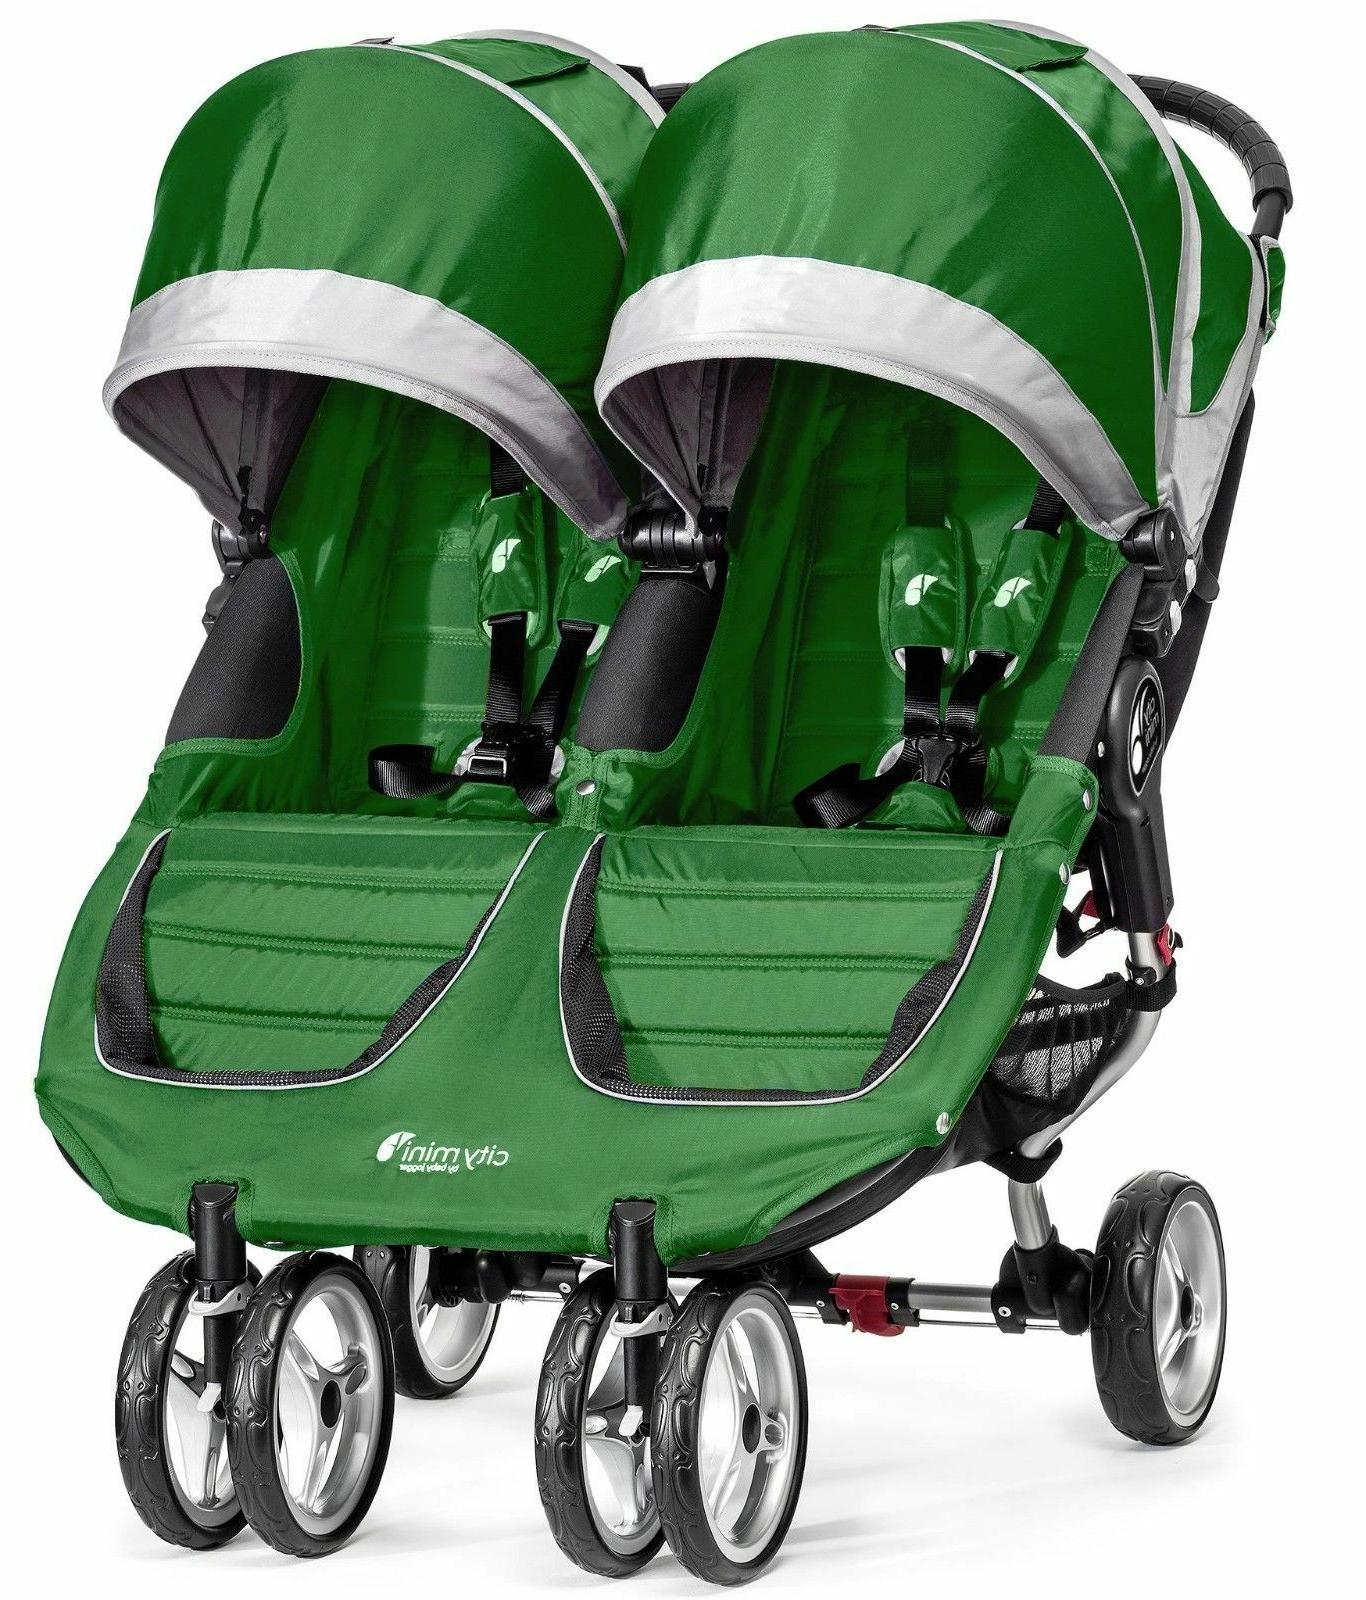 Uno2duo Stroller Baby Jogger City Mini Double Twin Stroll